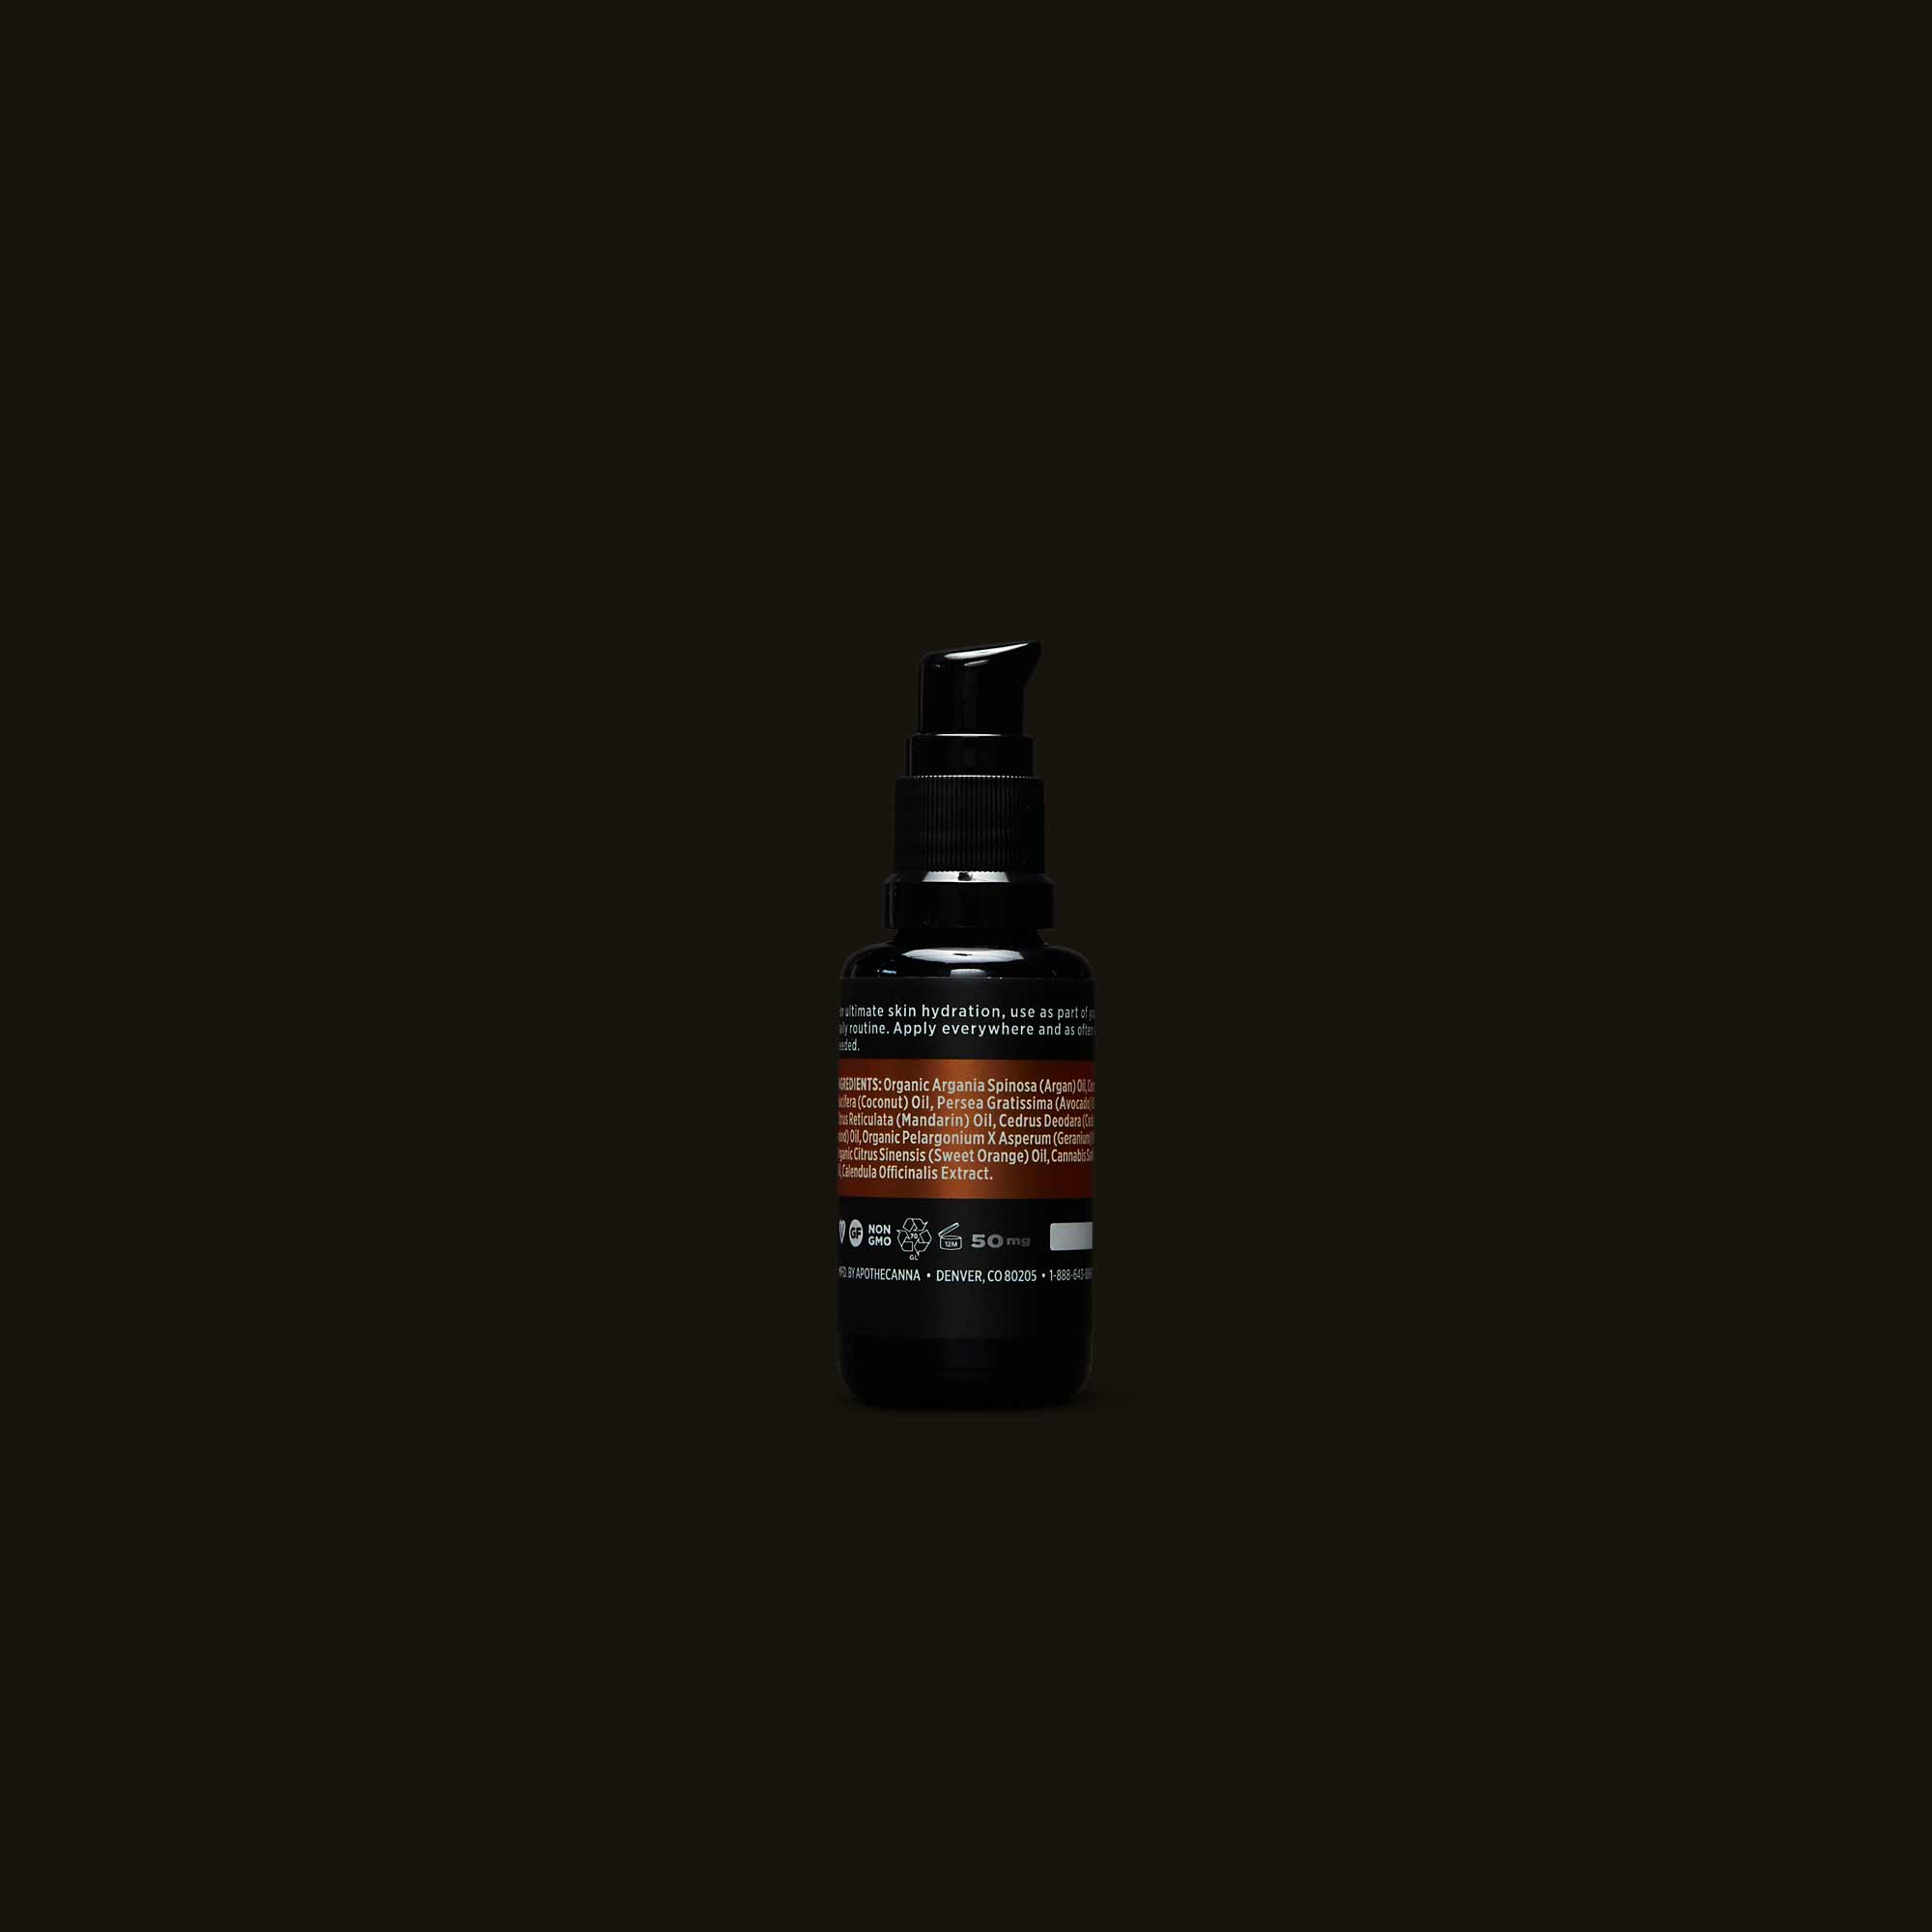 Ingredients for Apothecanna face and body oil